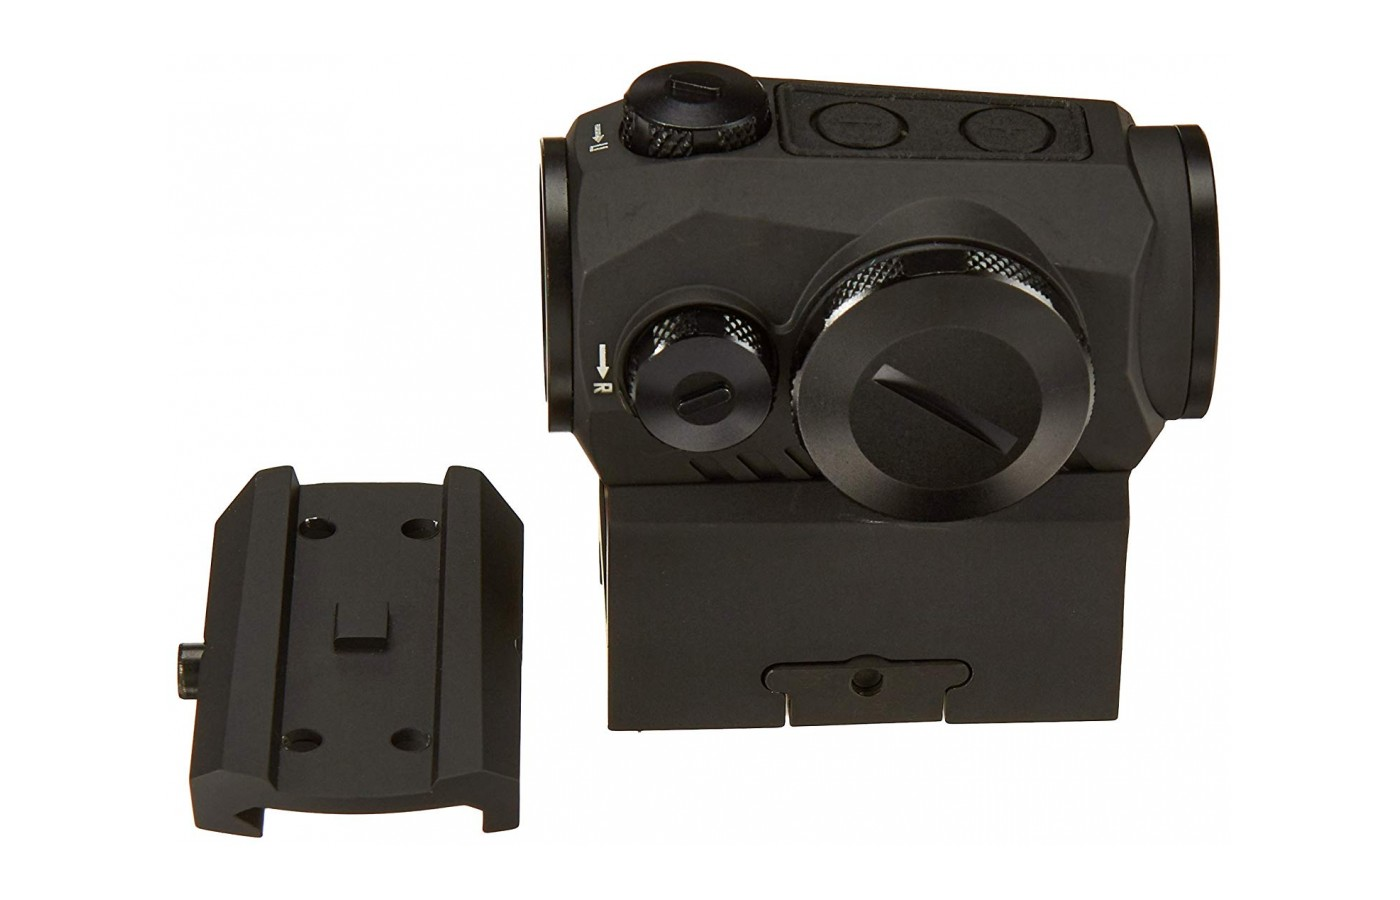 . The integrated M1913 Picatinny interface offers mounting options for a multitude of weaponry